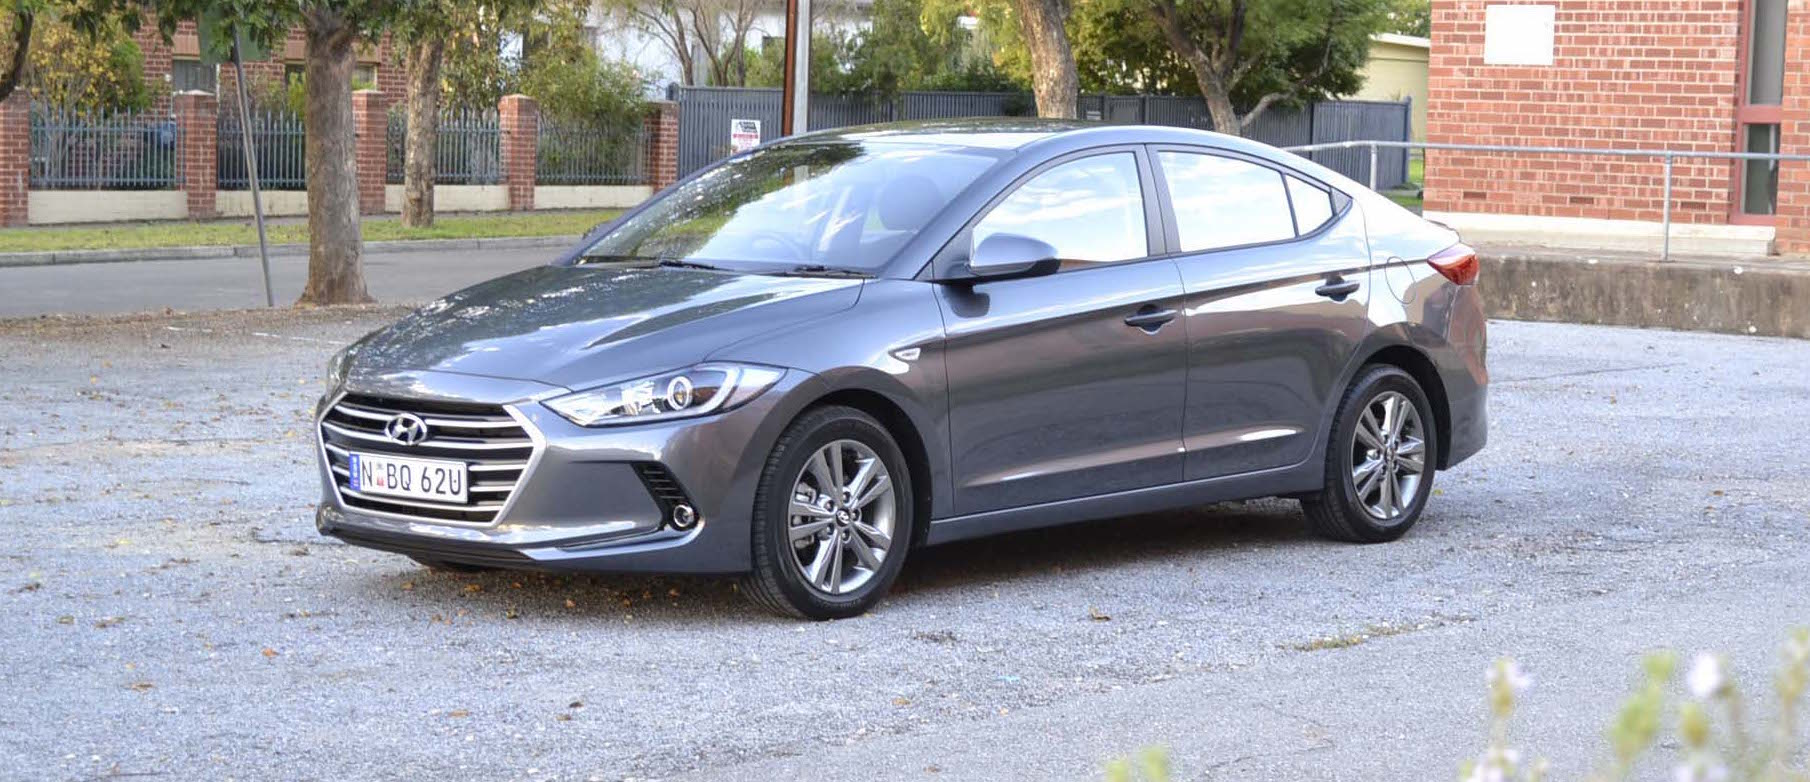 2016 hyundai elantra review. Black Bedroom Furniture Sets. Home Design Ideas